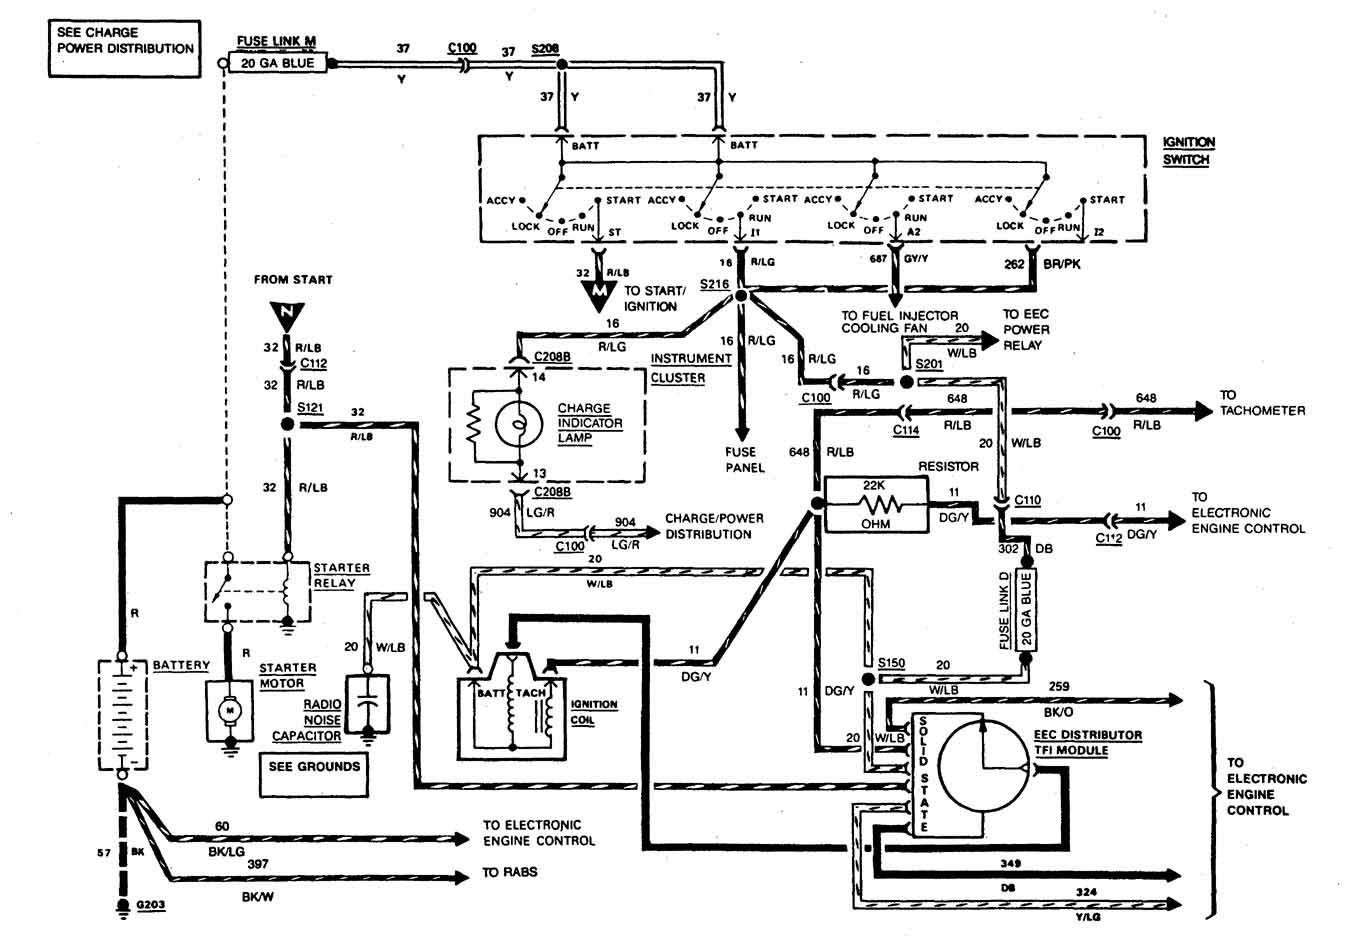 1988 Ford Bronco Starter Solenoid Wiring Diagram - Trusted Wiring Diagrams •autoglas-stadtroda.de